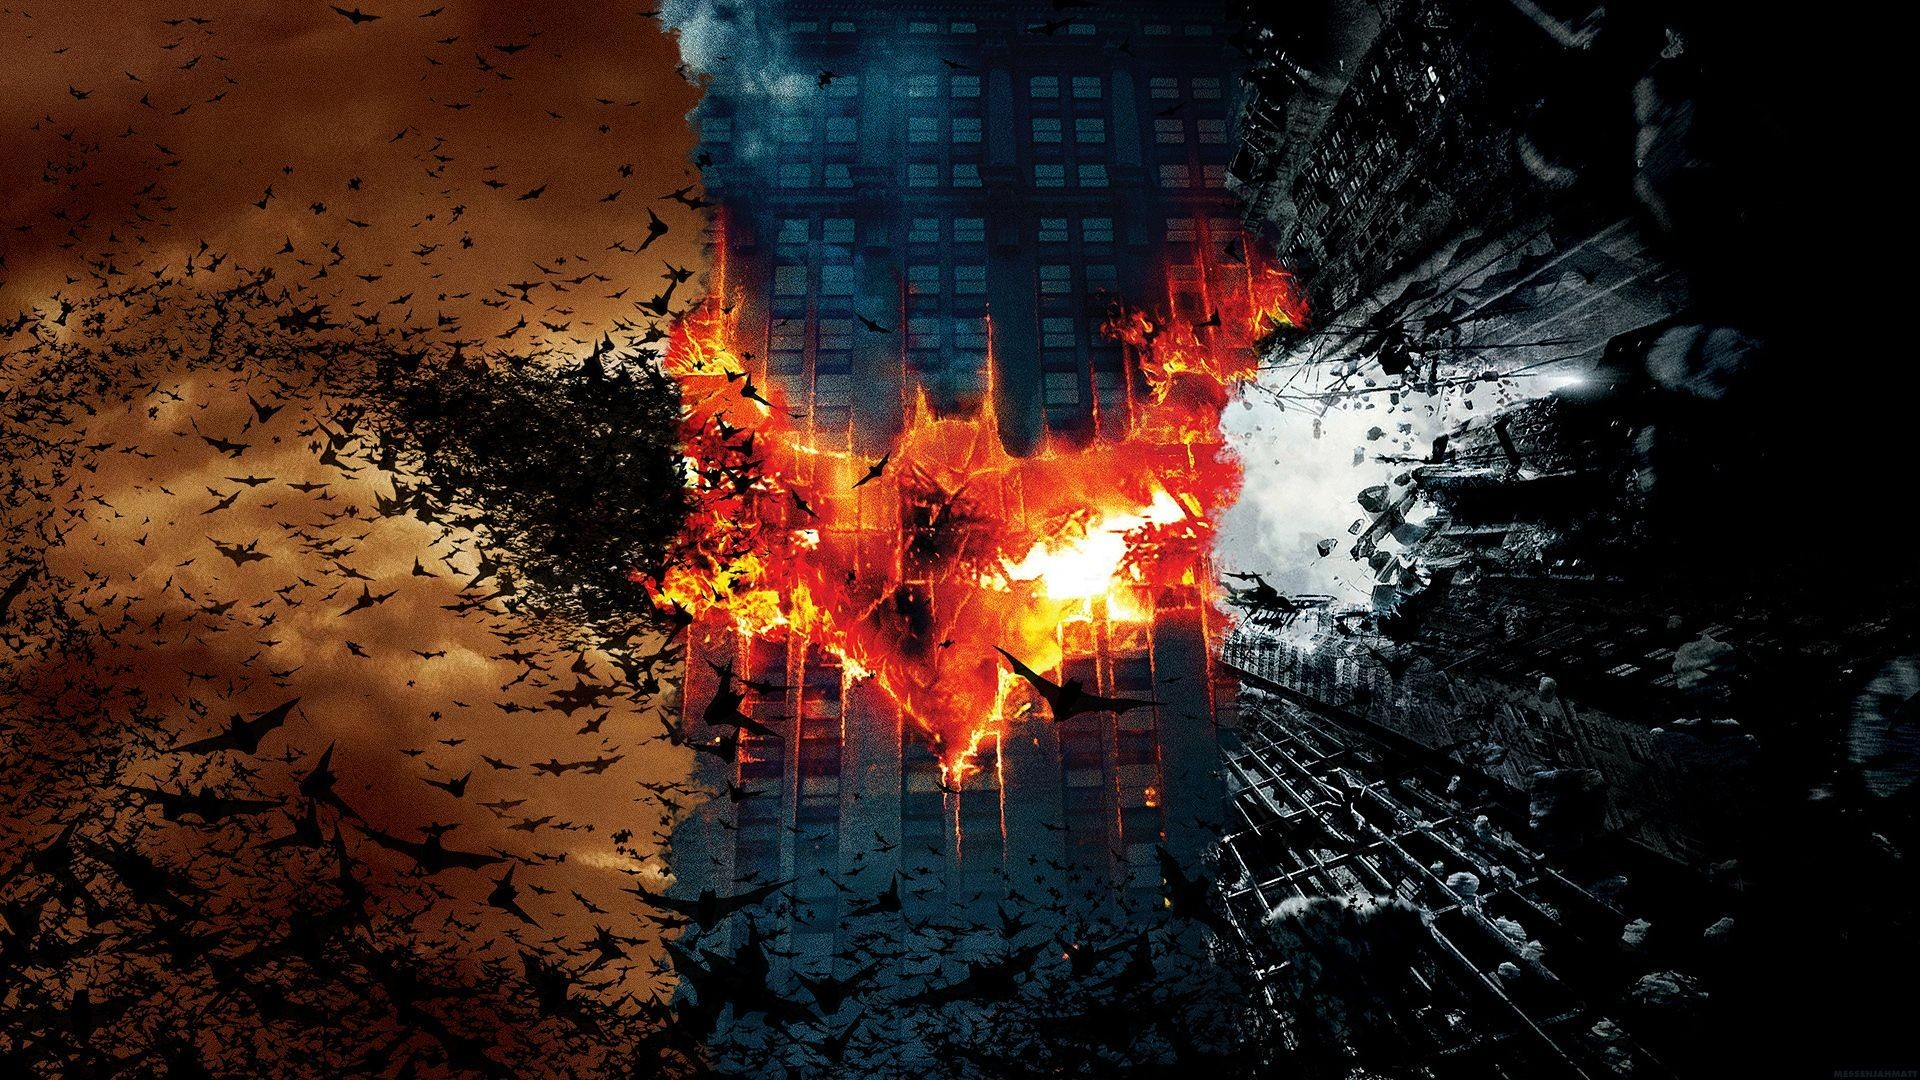 The Dark Knight Rises Wallpapers Hd 1920x1080 78